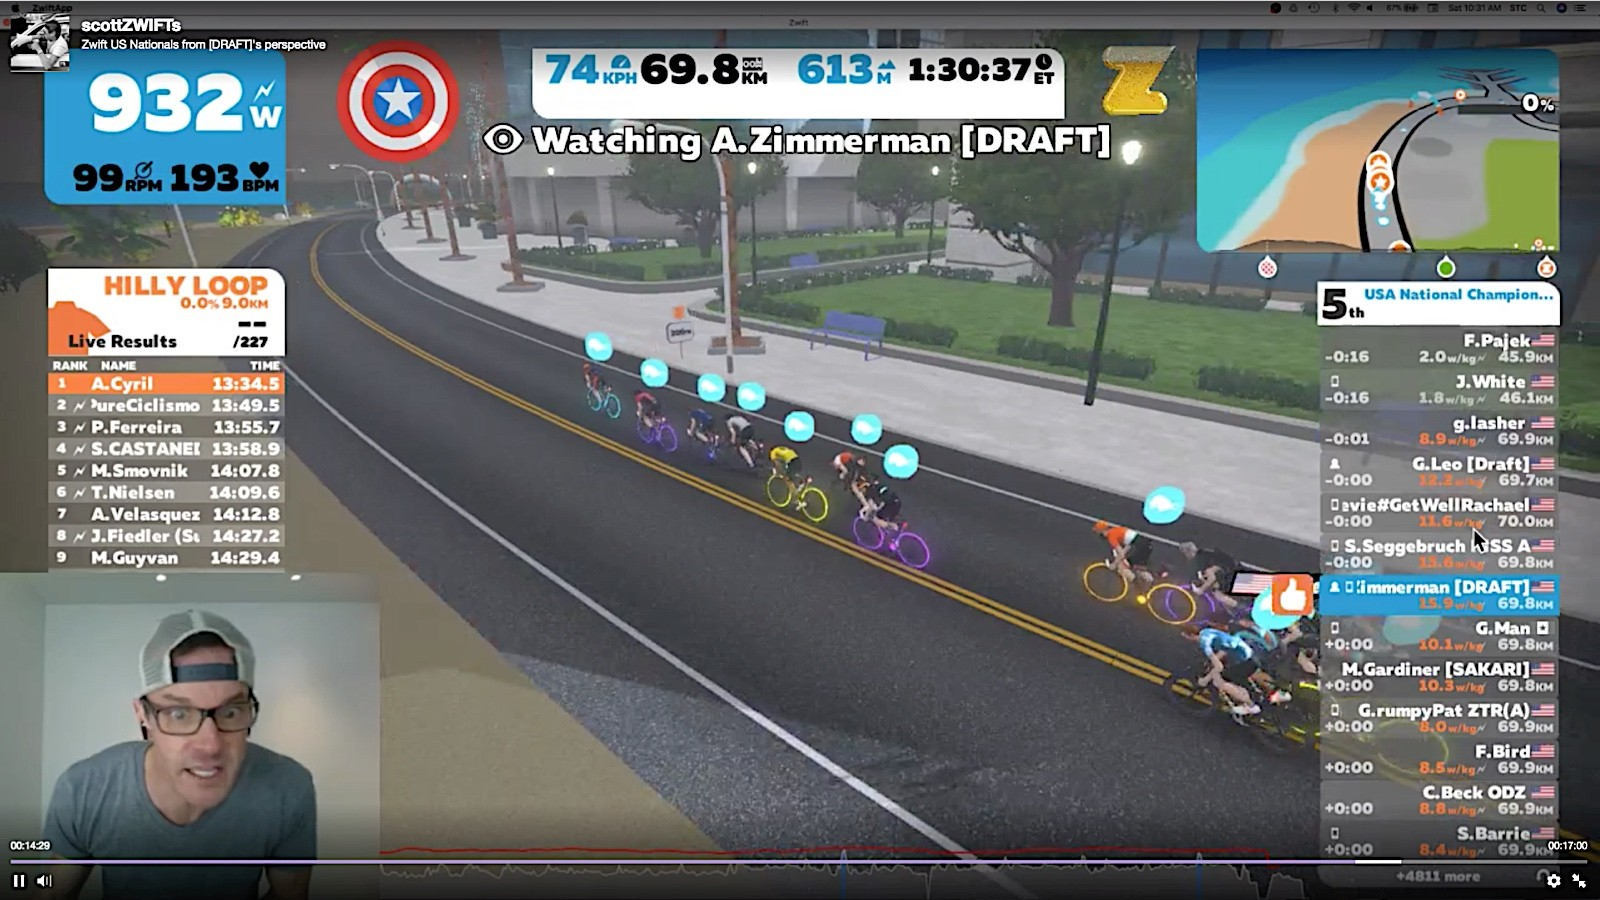 Zimmerman raced the Zwift US national championships as a team, complete with a team director, Scott Cunningham, who talked to the riders on the Discord app